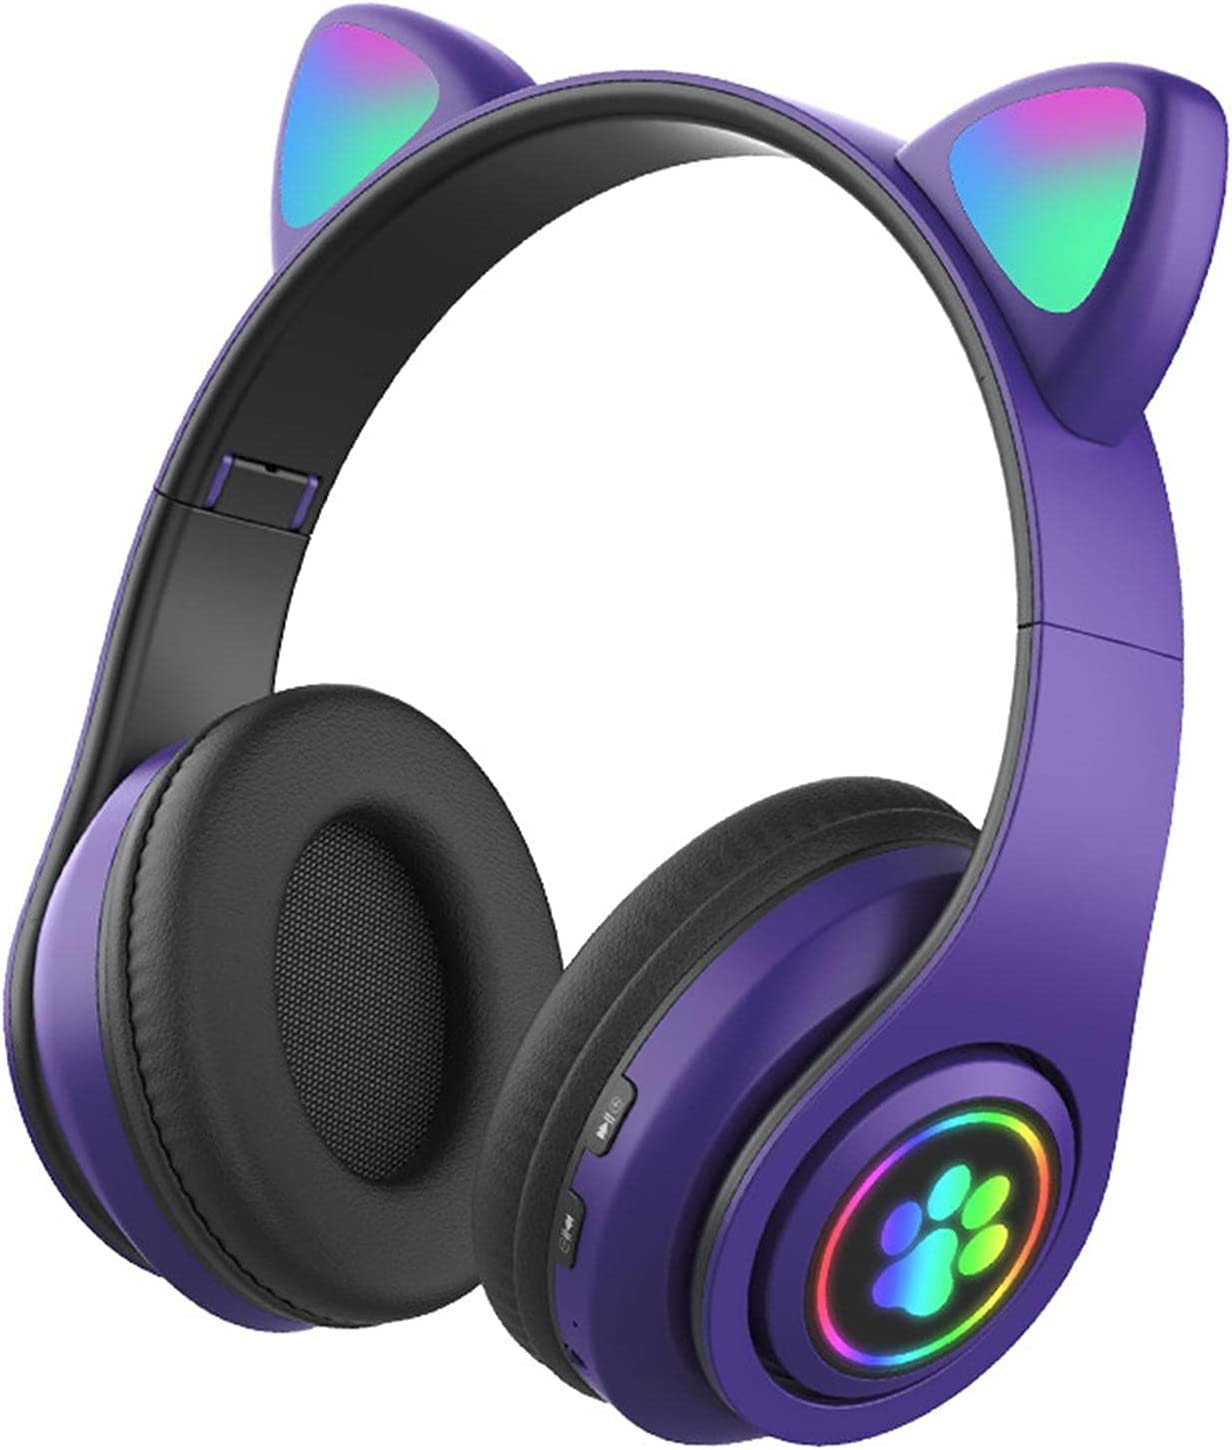 BIUNIY Wireless Bluetooth Headphones for Kids USB Charging Foldable Stereo Headphones Support TF Card Music Games Gift